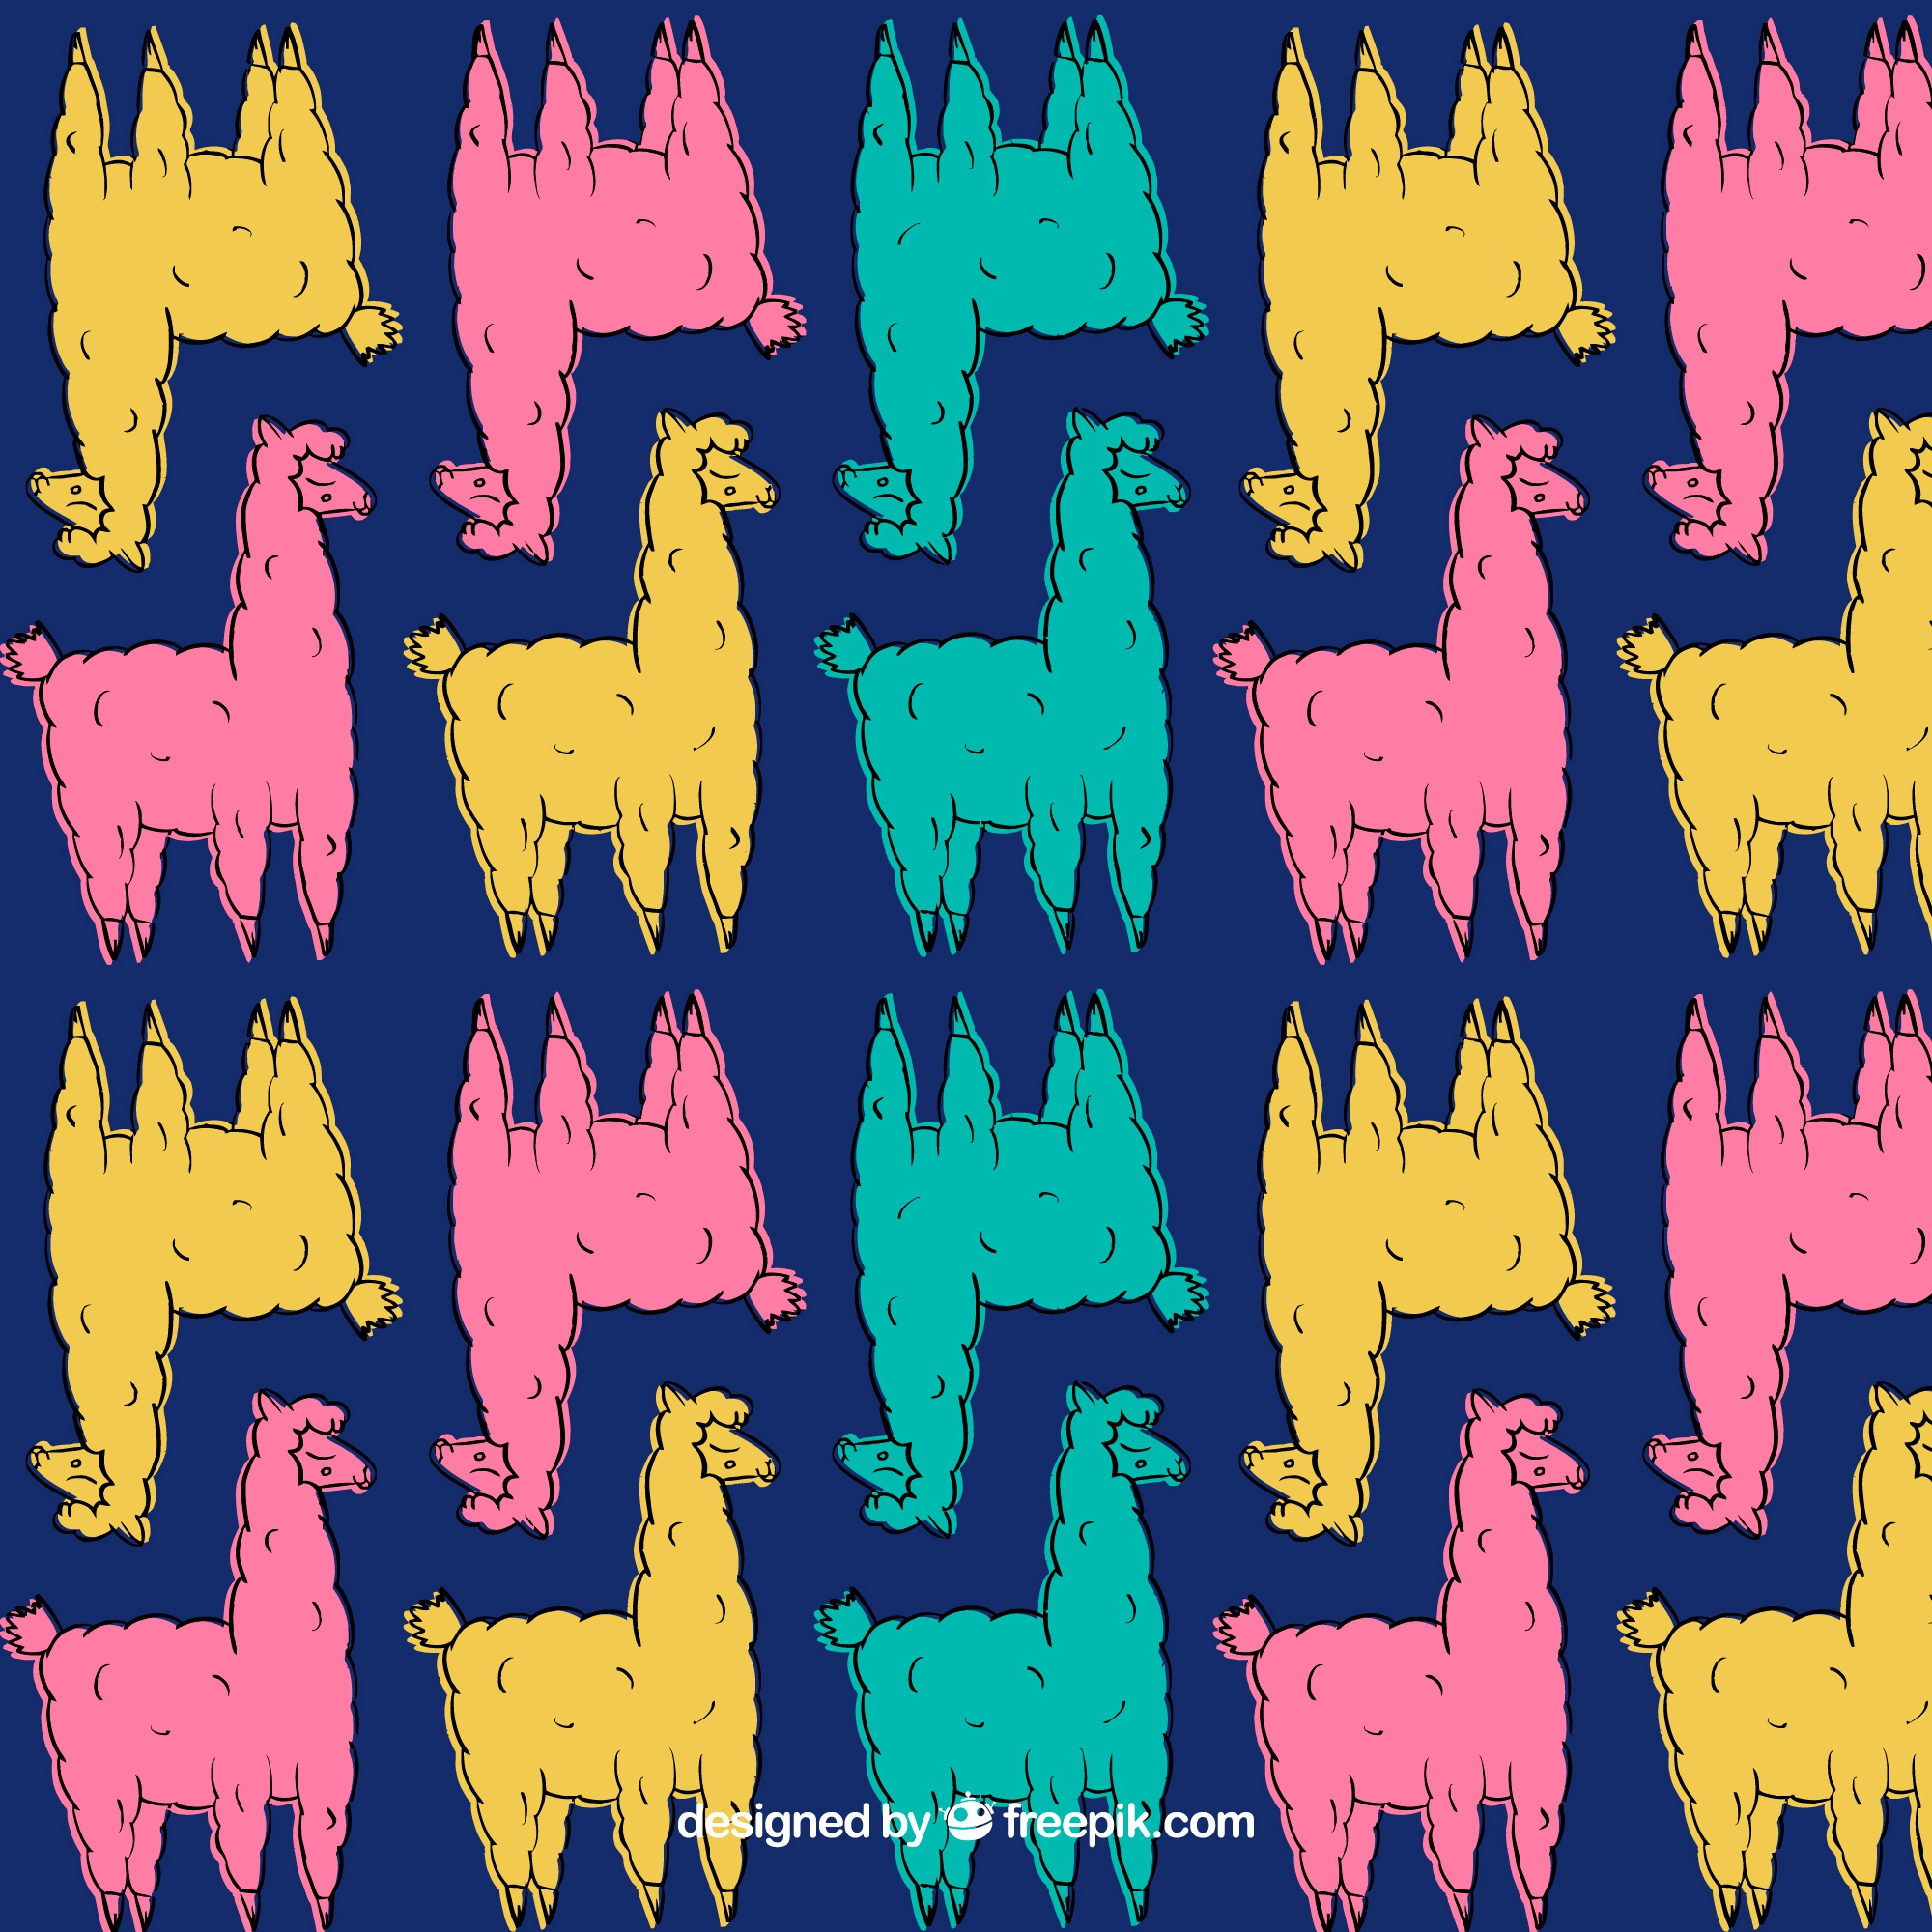 Cute alpacas pattern in different colors